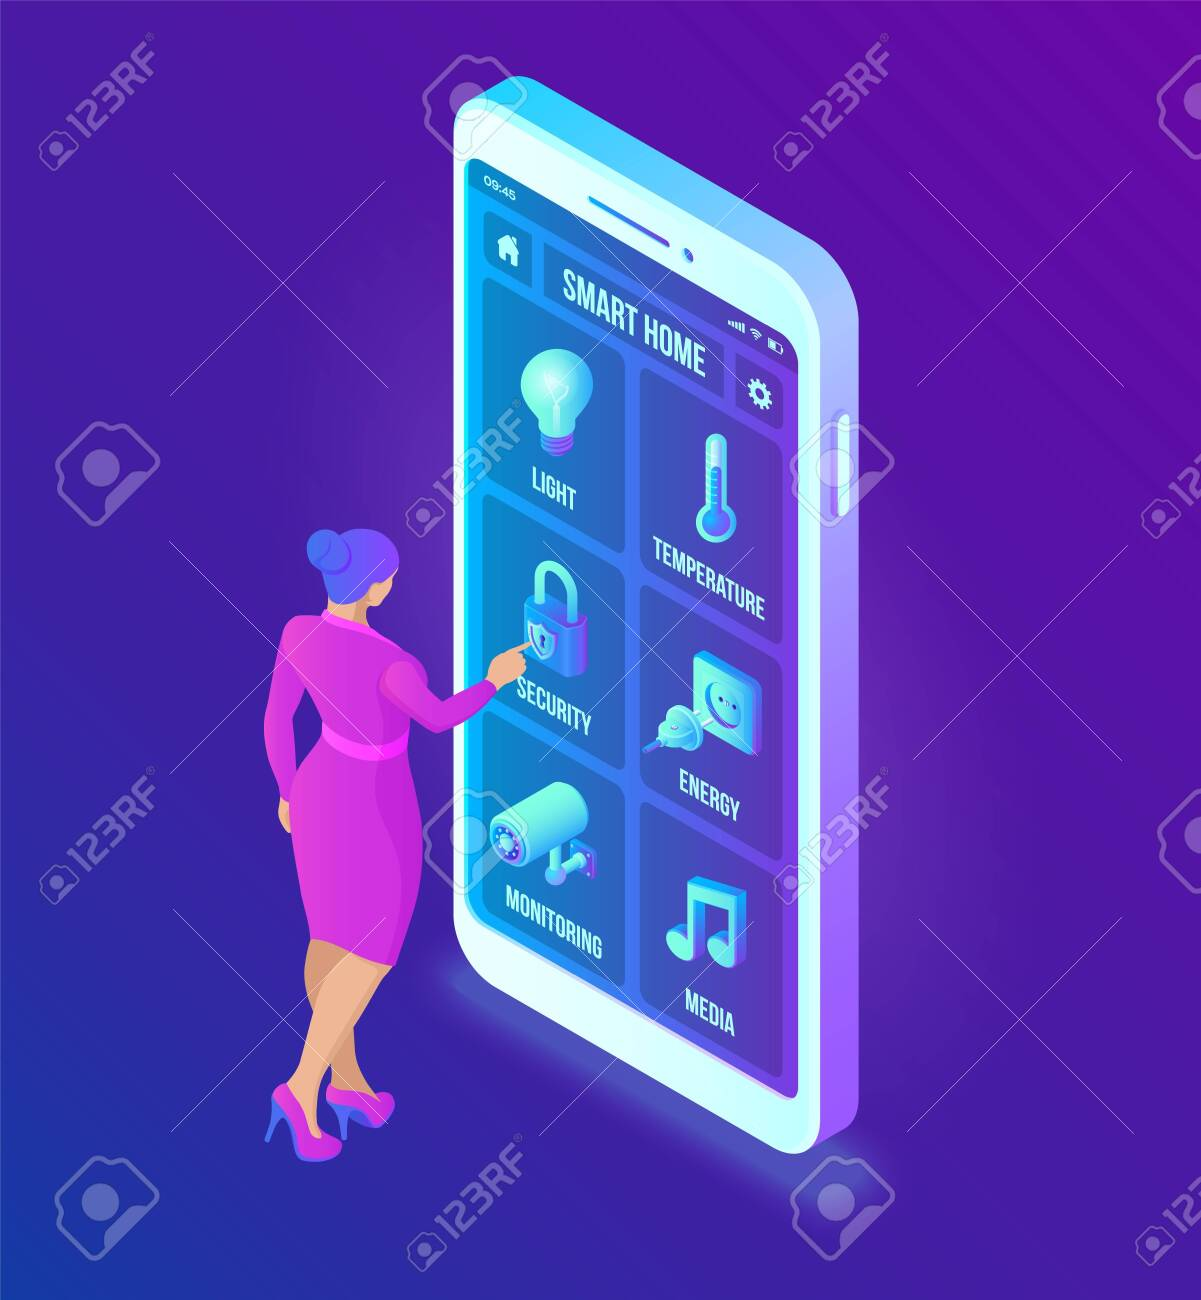 Smart home technology 3D isometric interface on smartphone app